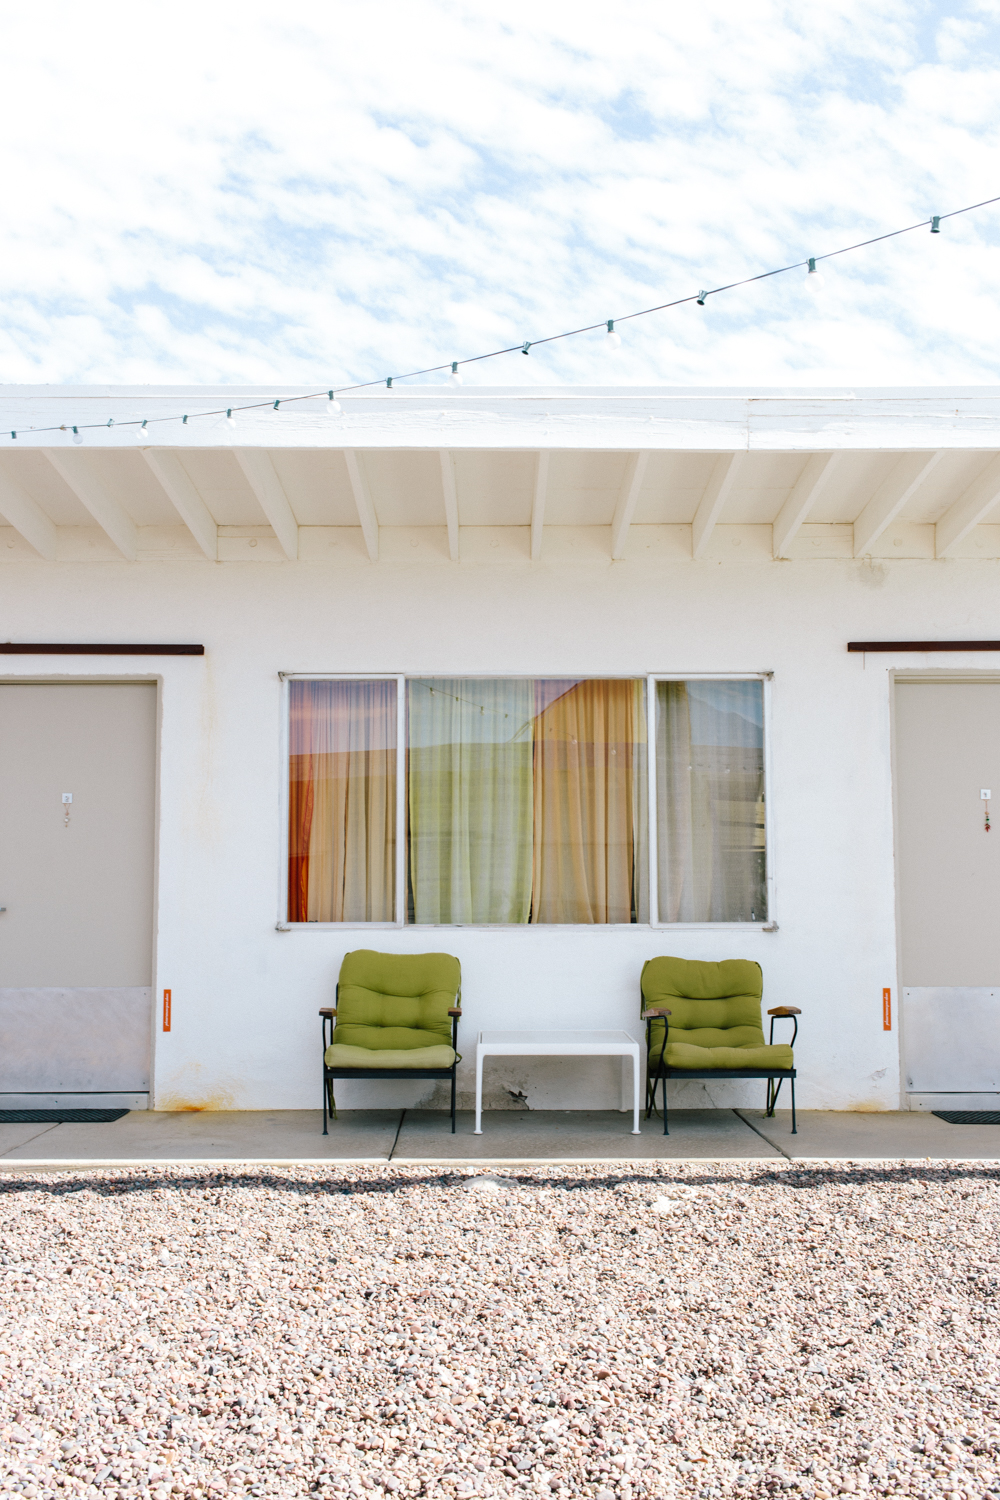 Each room has a mini outdoor seating area.